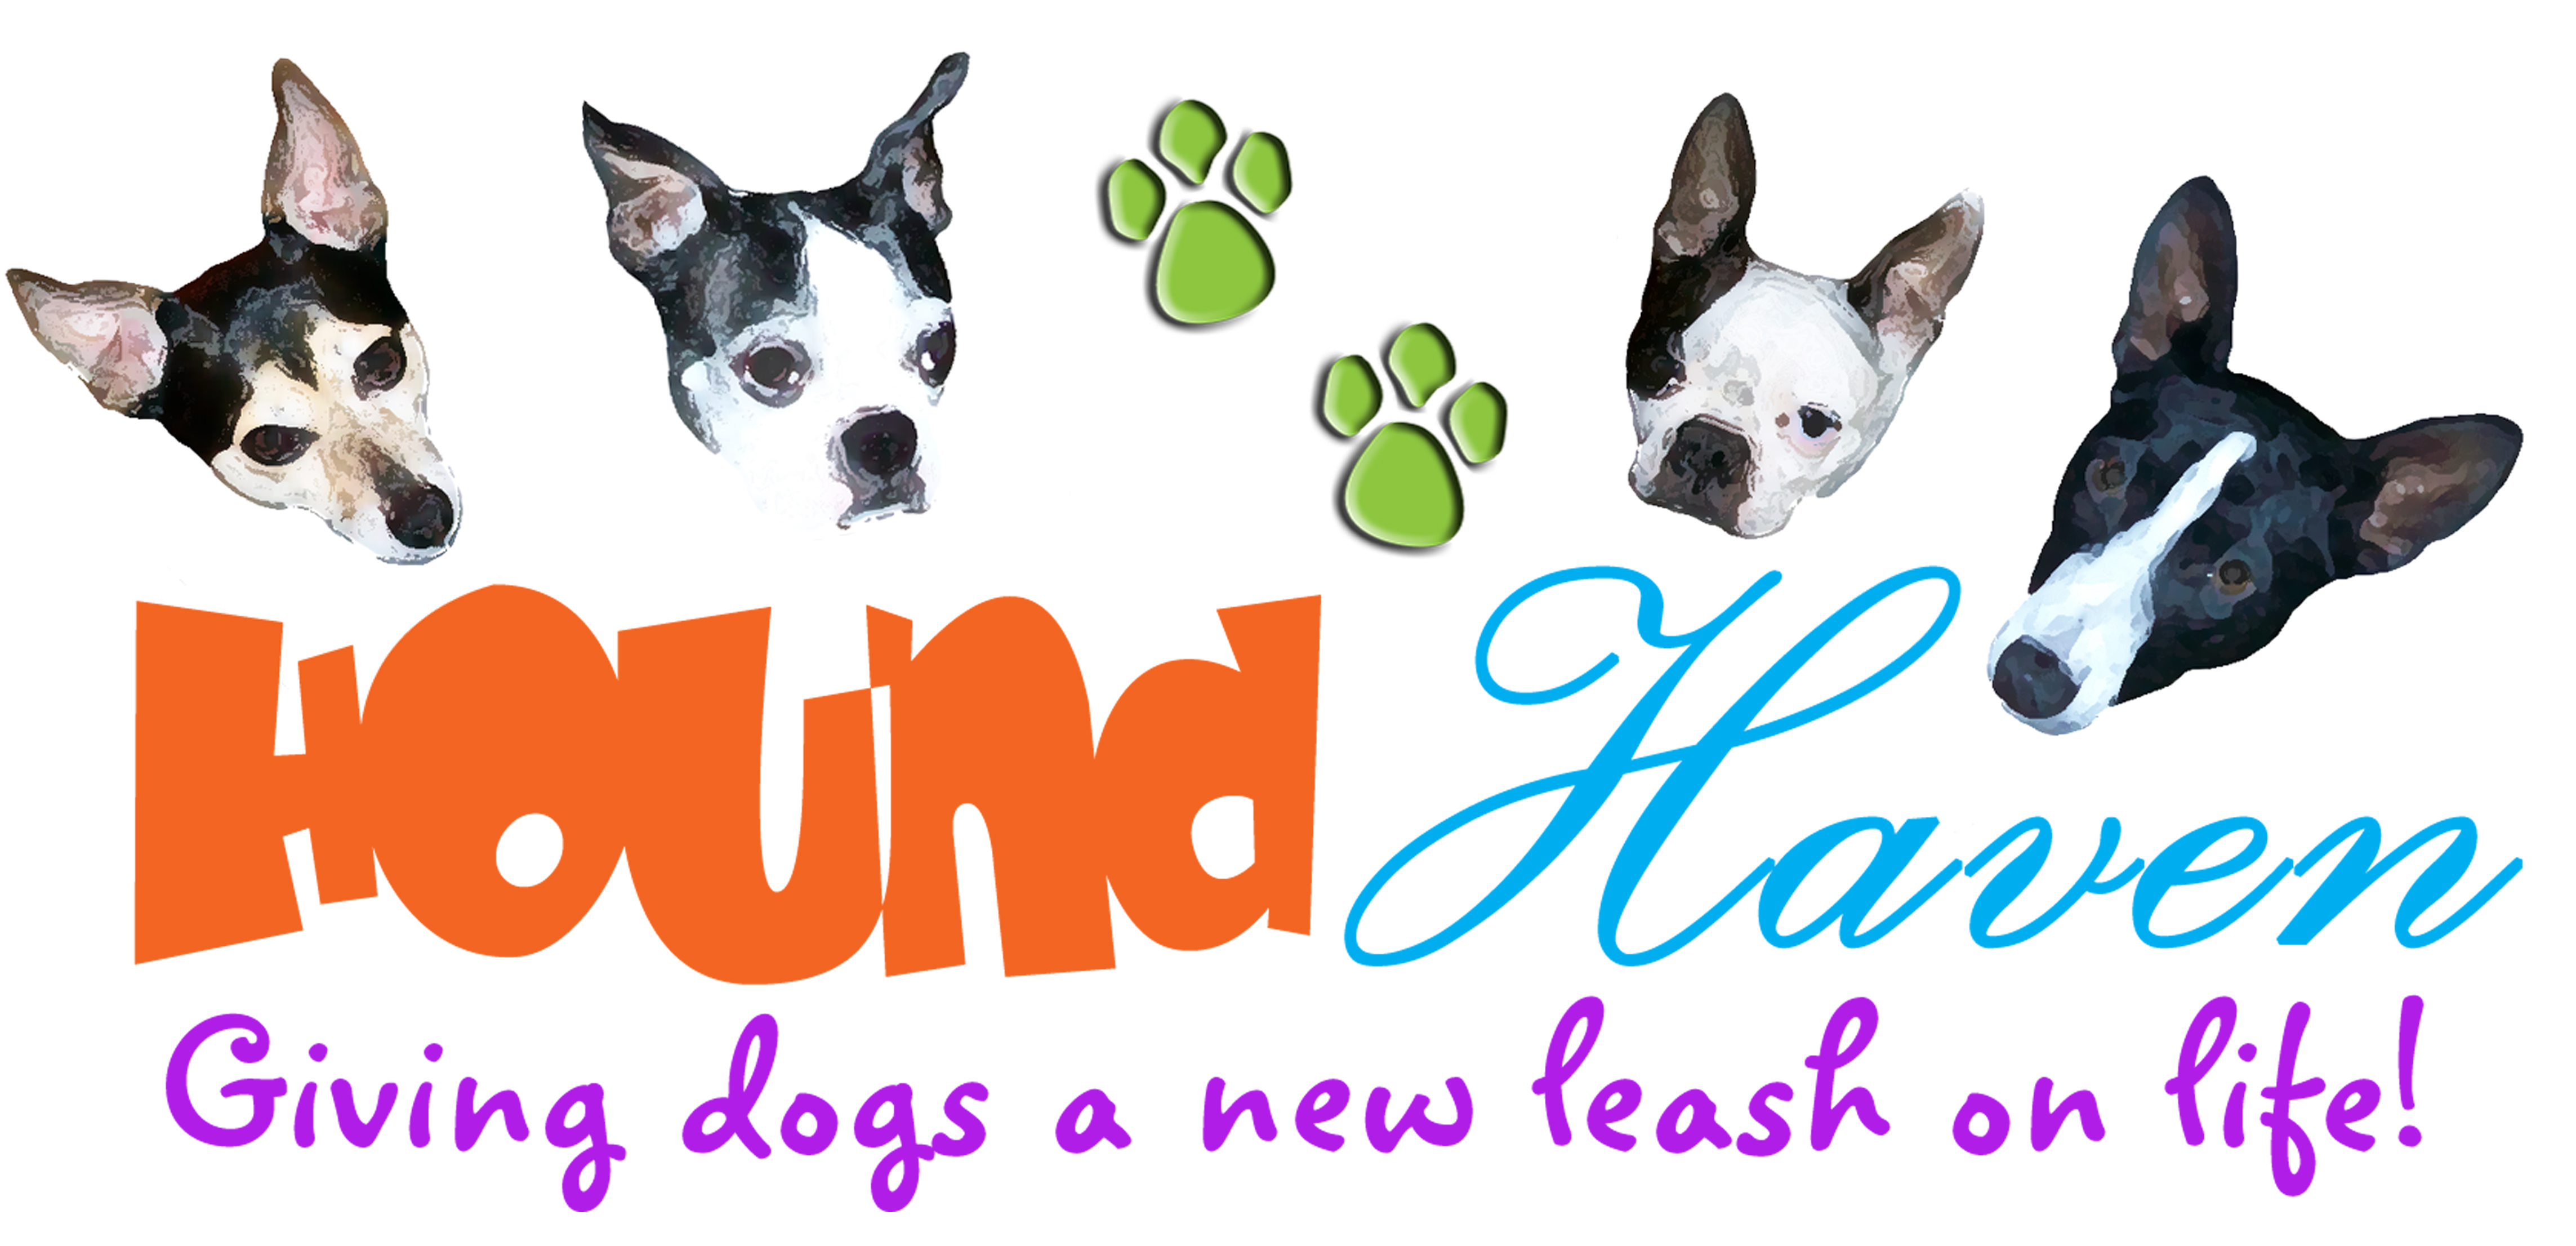 HOUND HAVEN, INC.